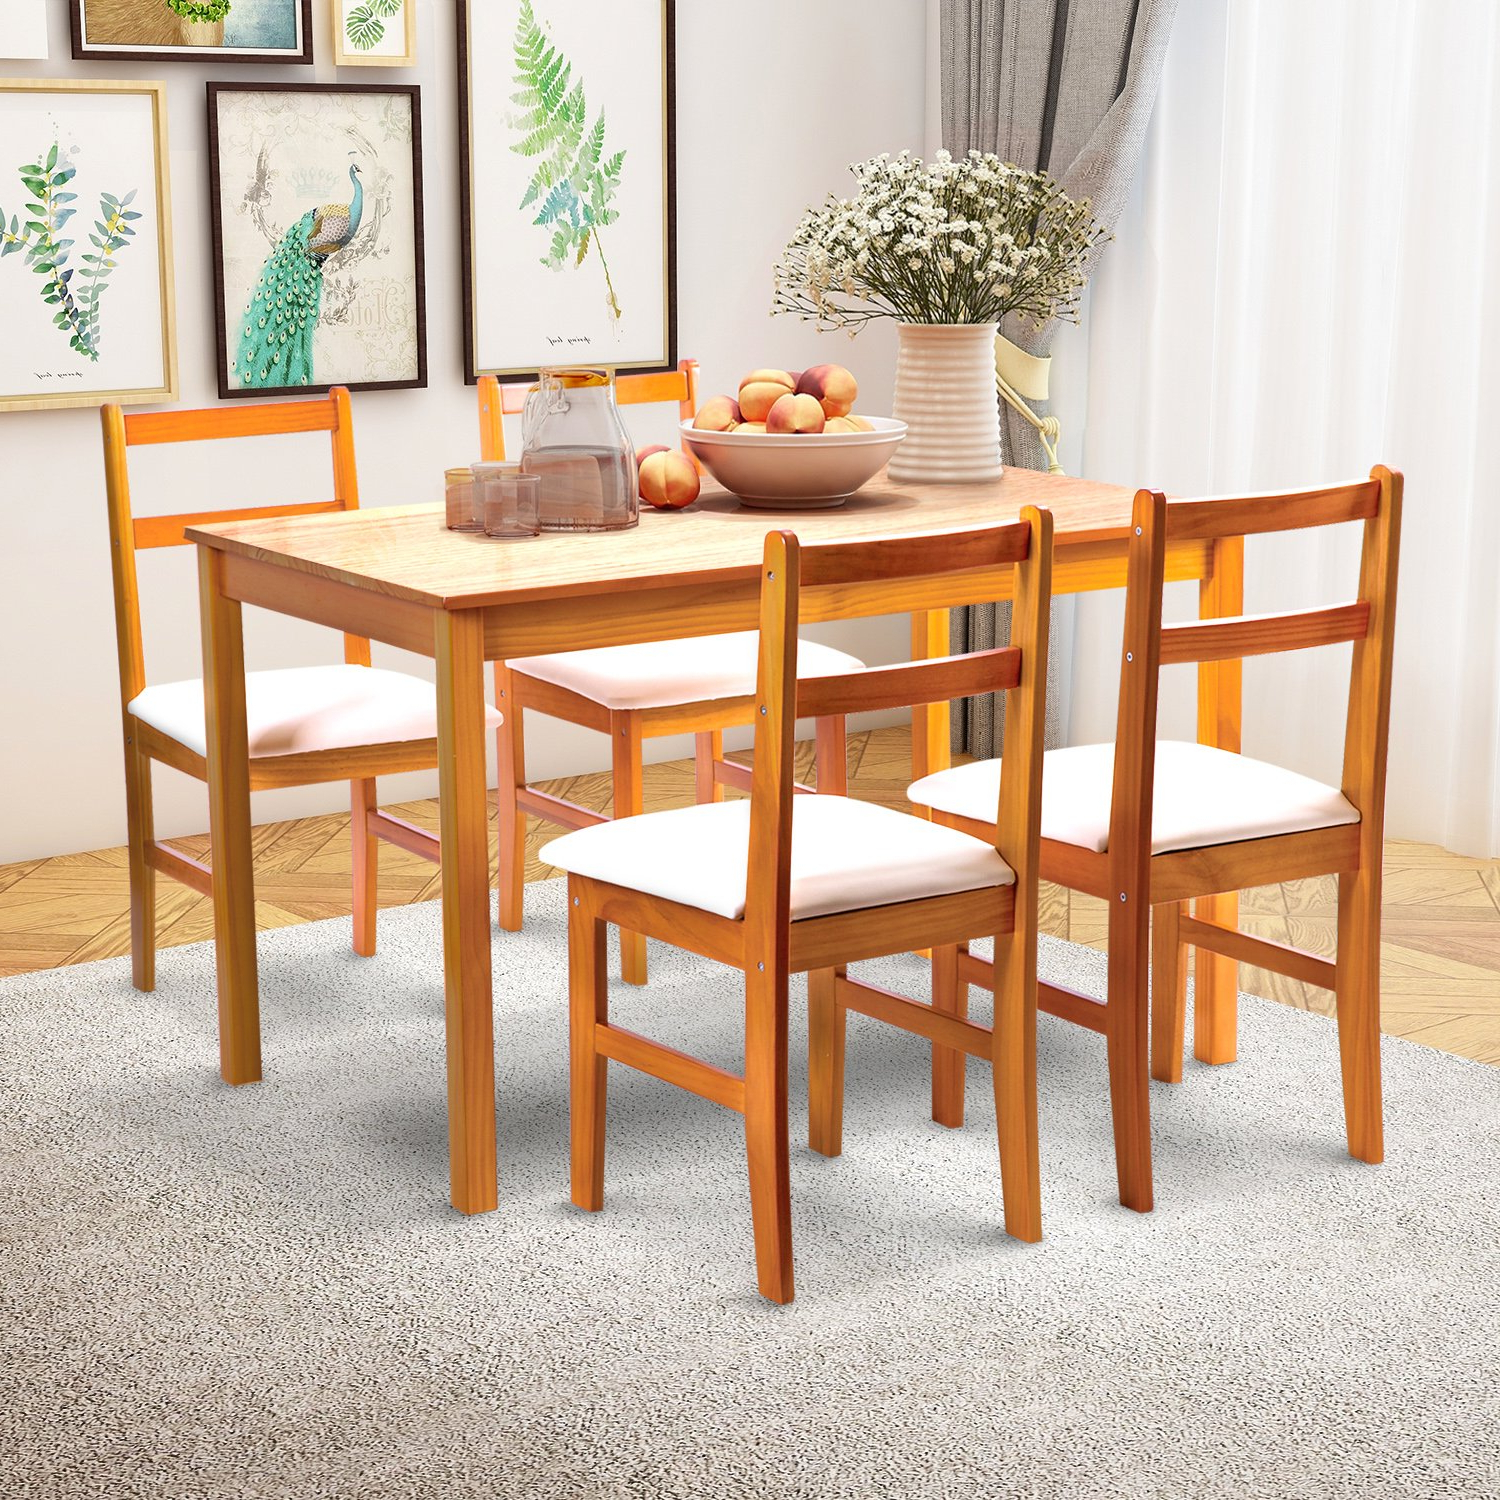 Favorite Furniture Giantex Modern Dining Table Mid Century Home Throughout Mid Century Rectangular Top Dining Tables With Wood Legs (View 10 of 30)